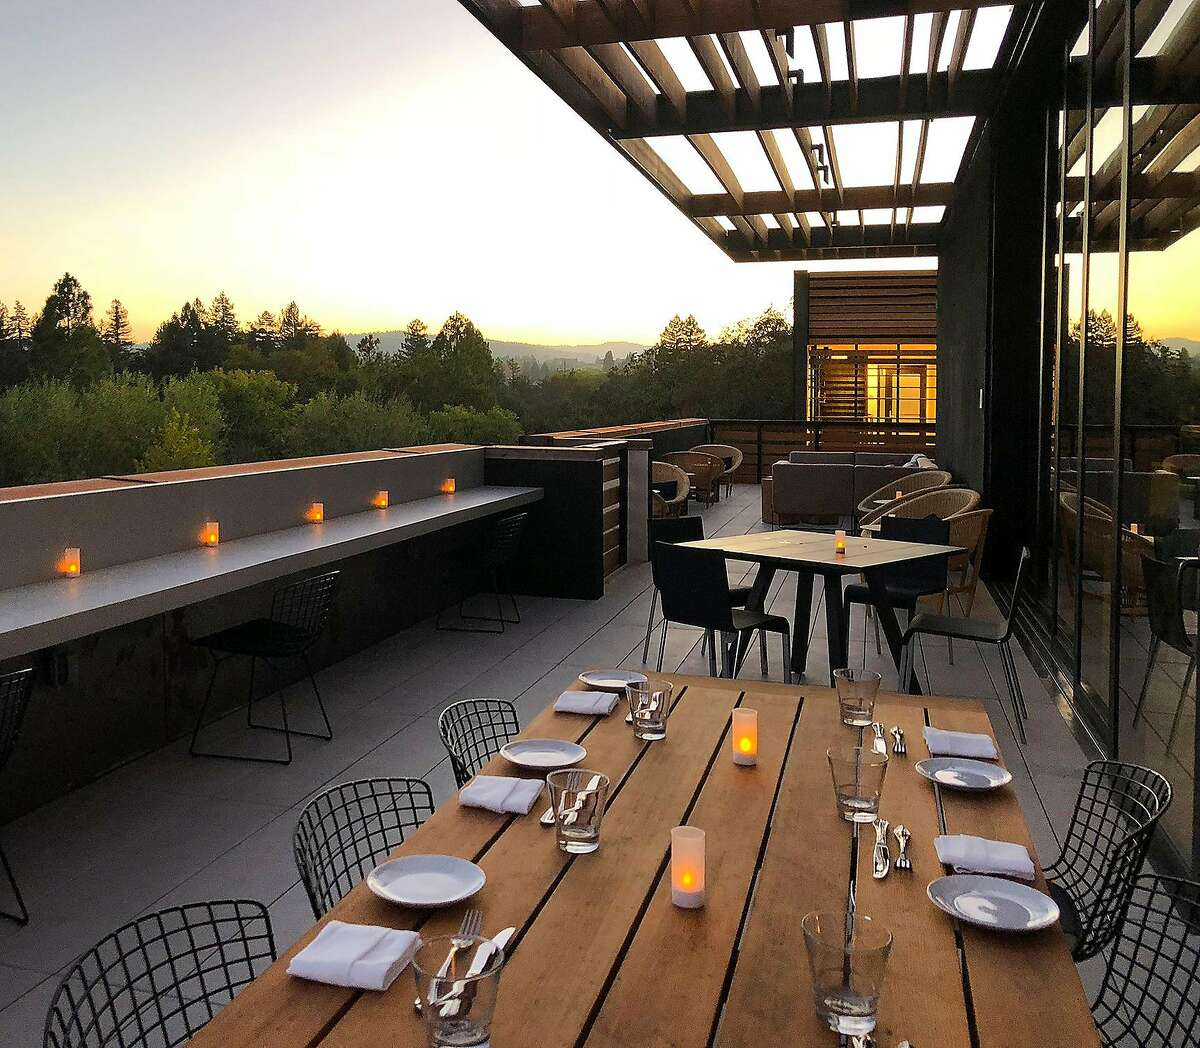 The rooftop terrace at the Harmon Guest House features views of Fitch Mountain, the Sonoma hills and downtown Healdsburg.